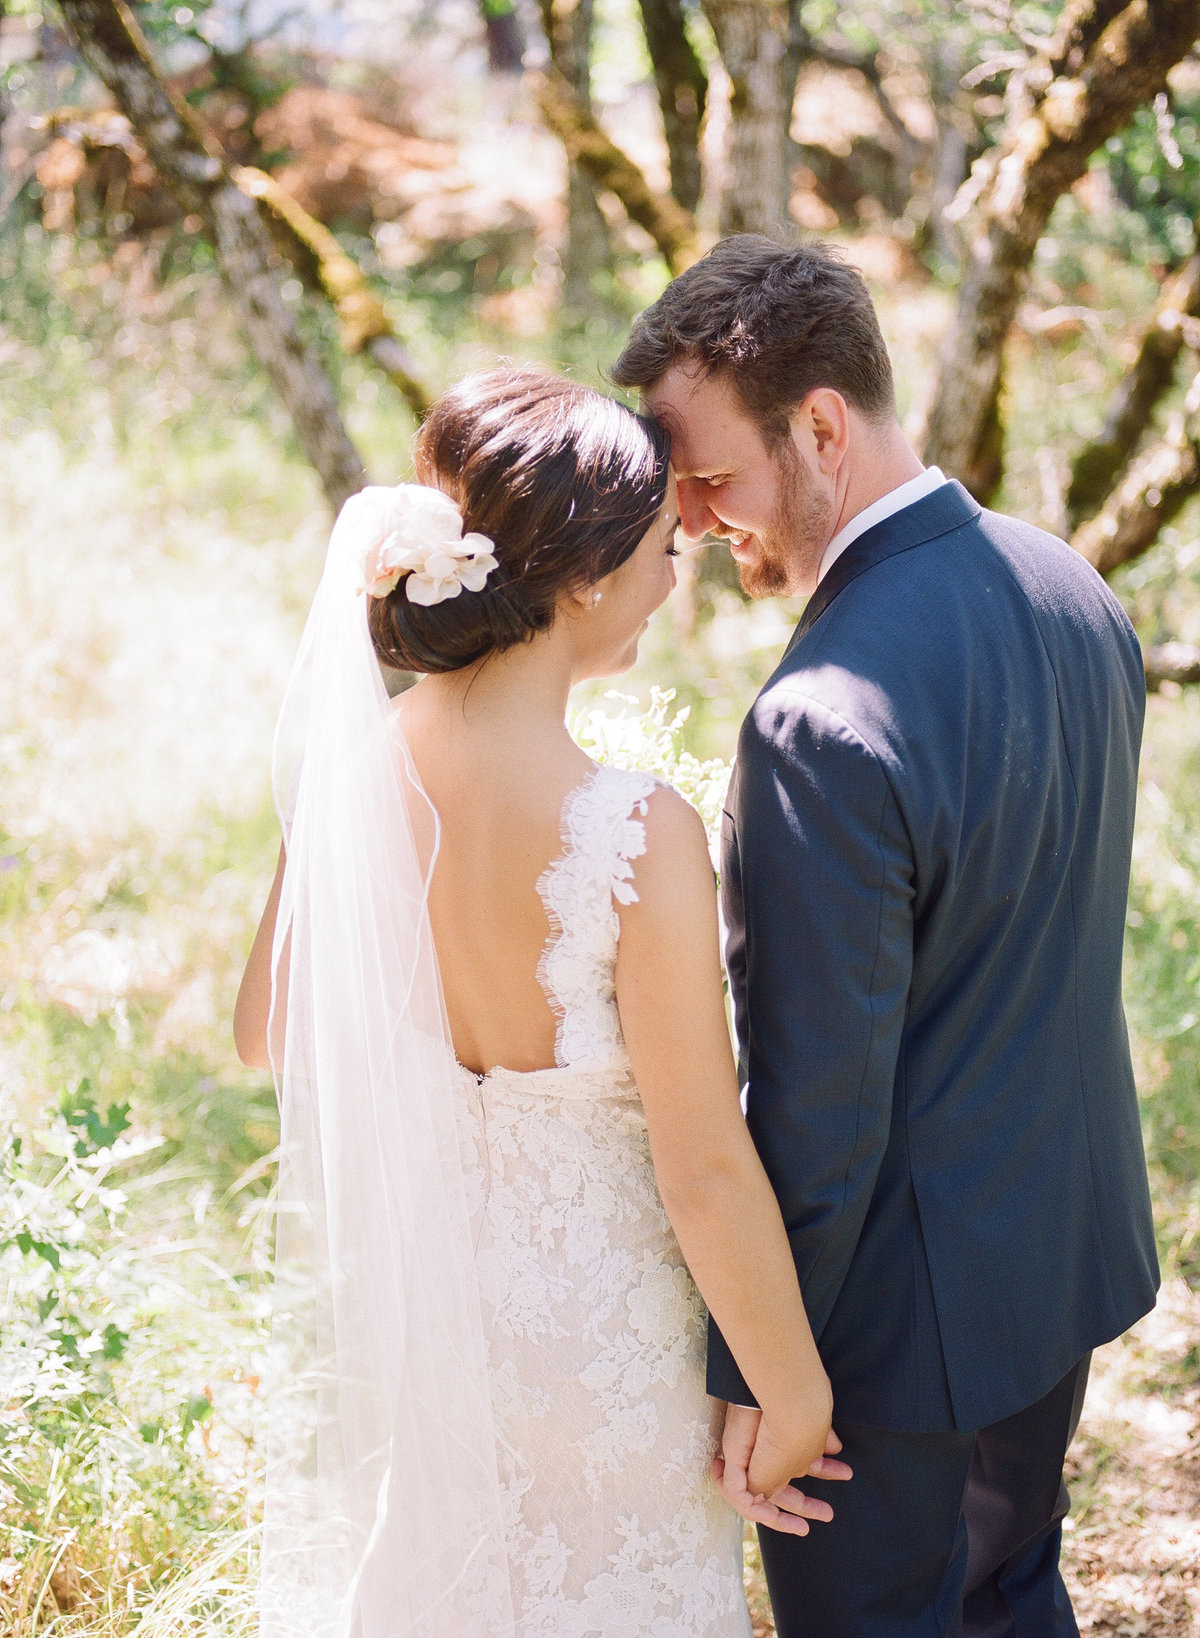 Melissa+Morgans_Wedding_BrideandGroom-6